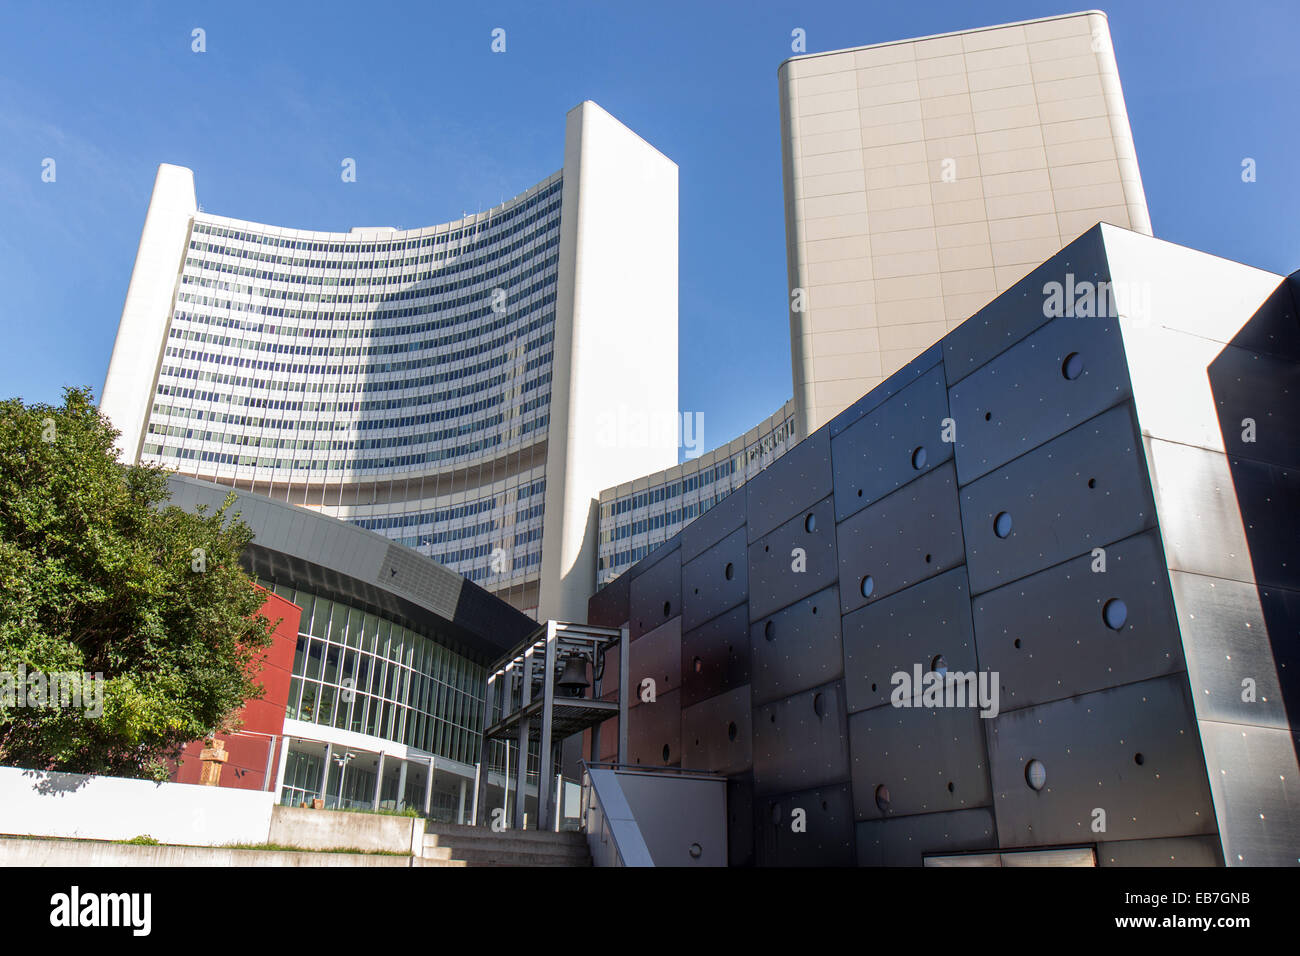 Austria: Vienna International Centre with IAEO towers (United Nations). Photo from 1. November 2014. - Stock Image